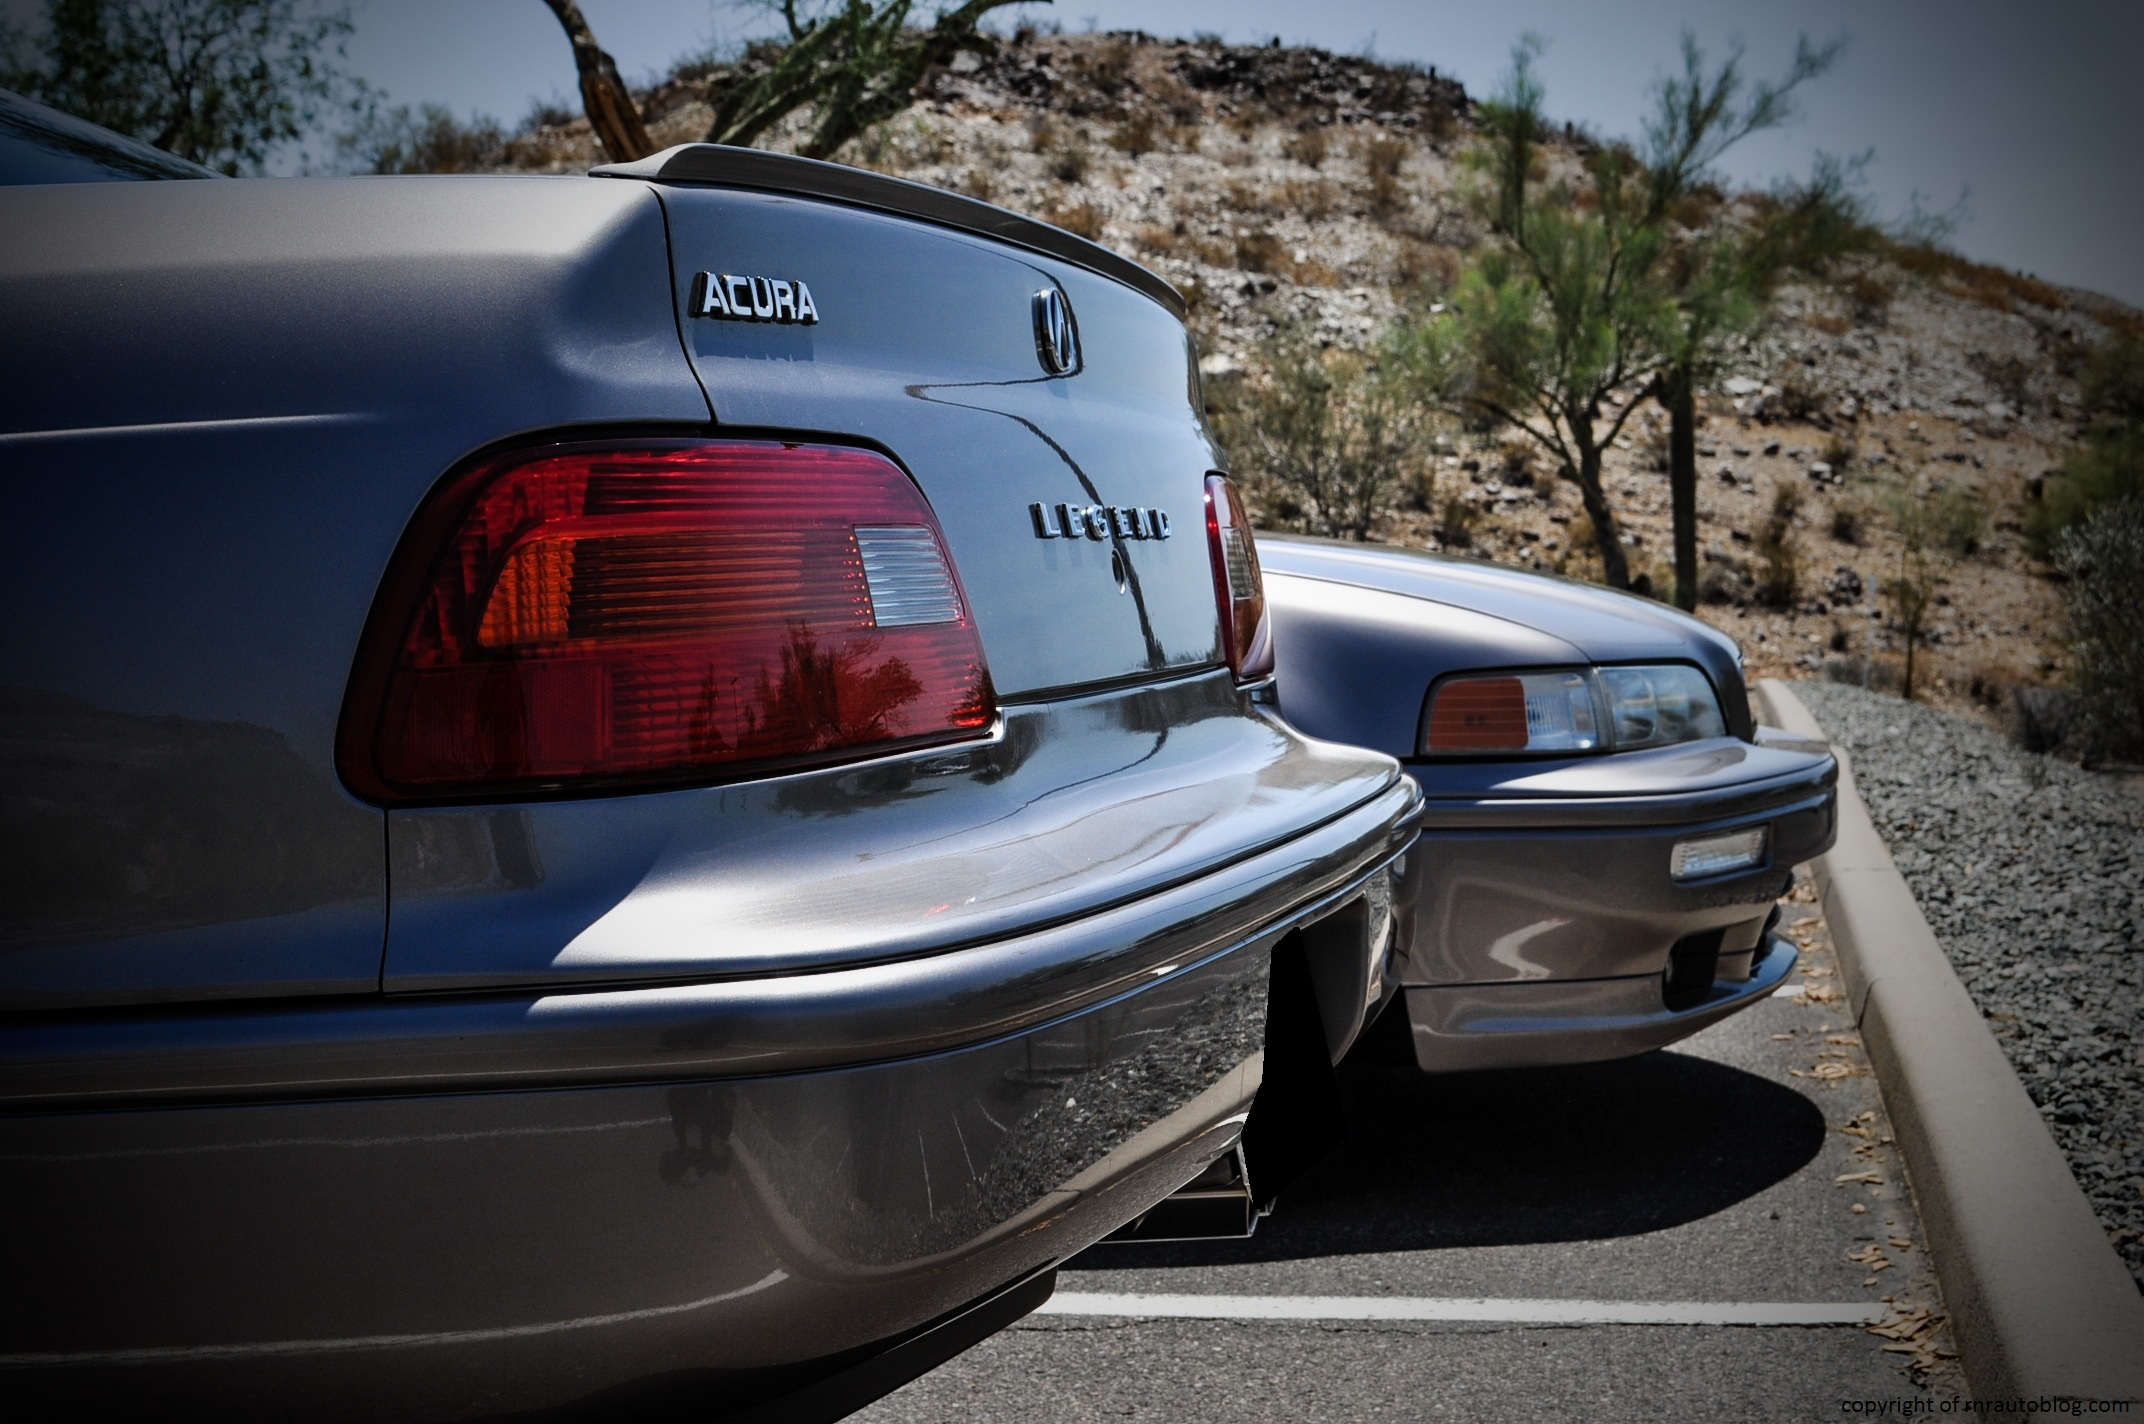 1994 acura legend ls coupe and gs sedan review rnr automotive blog rh rnrautoblog com